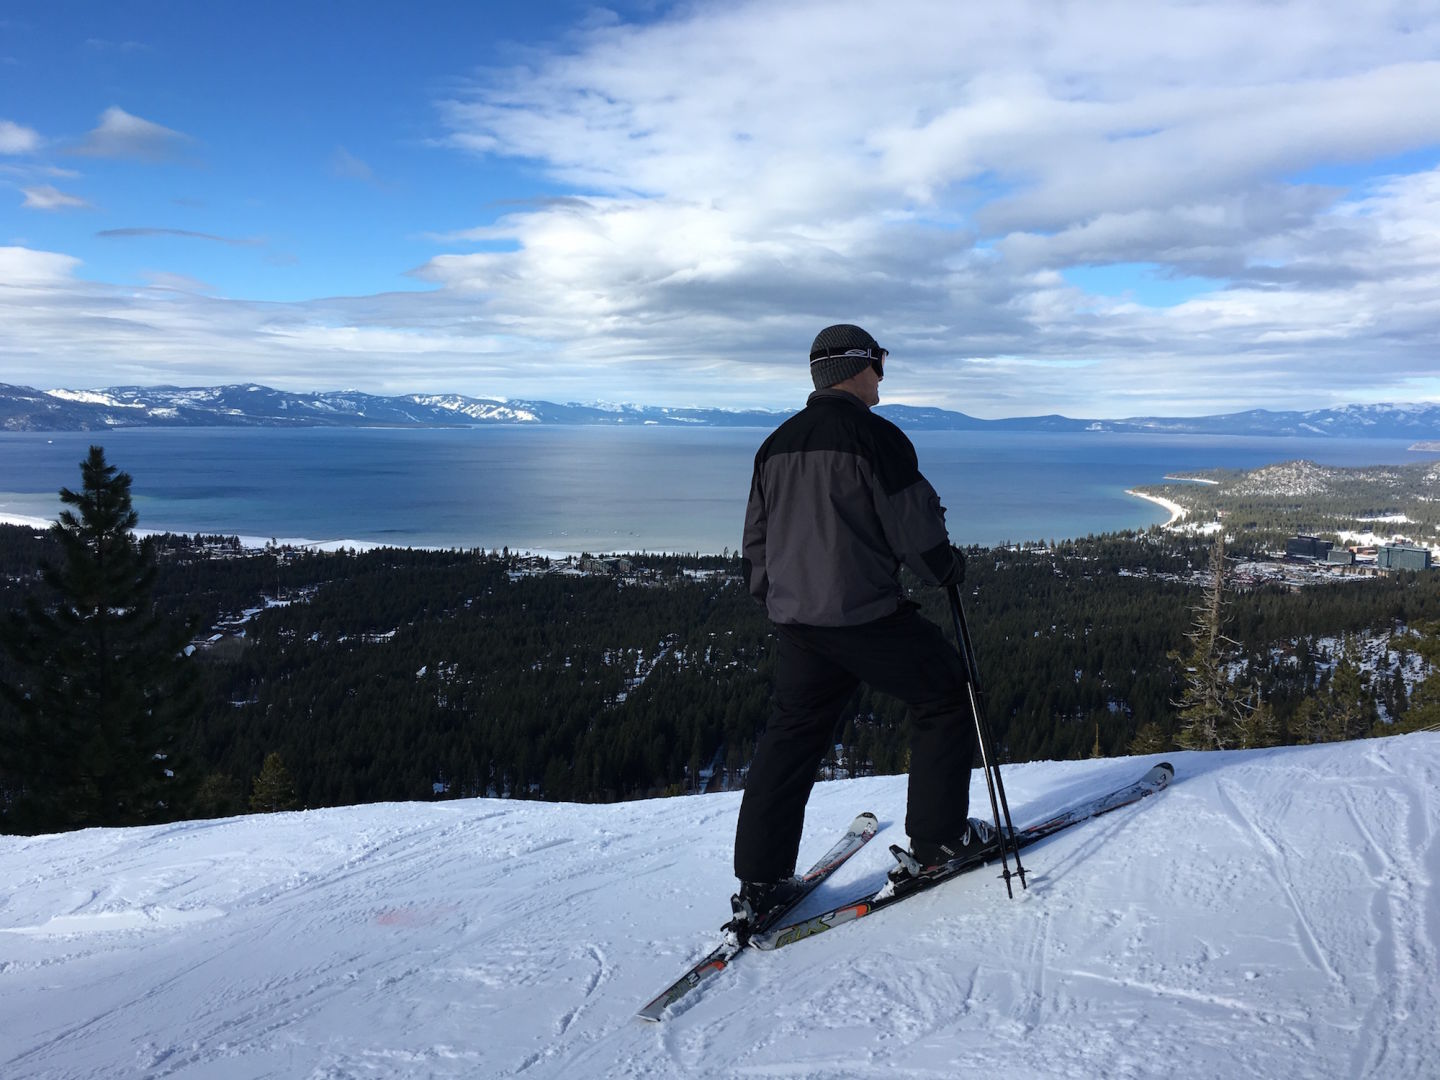 A skier surveys the view of South Lake Tahoe from Heavenly ski resort.